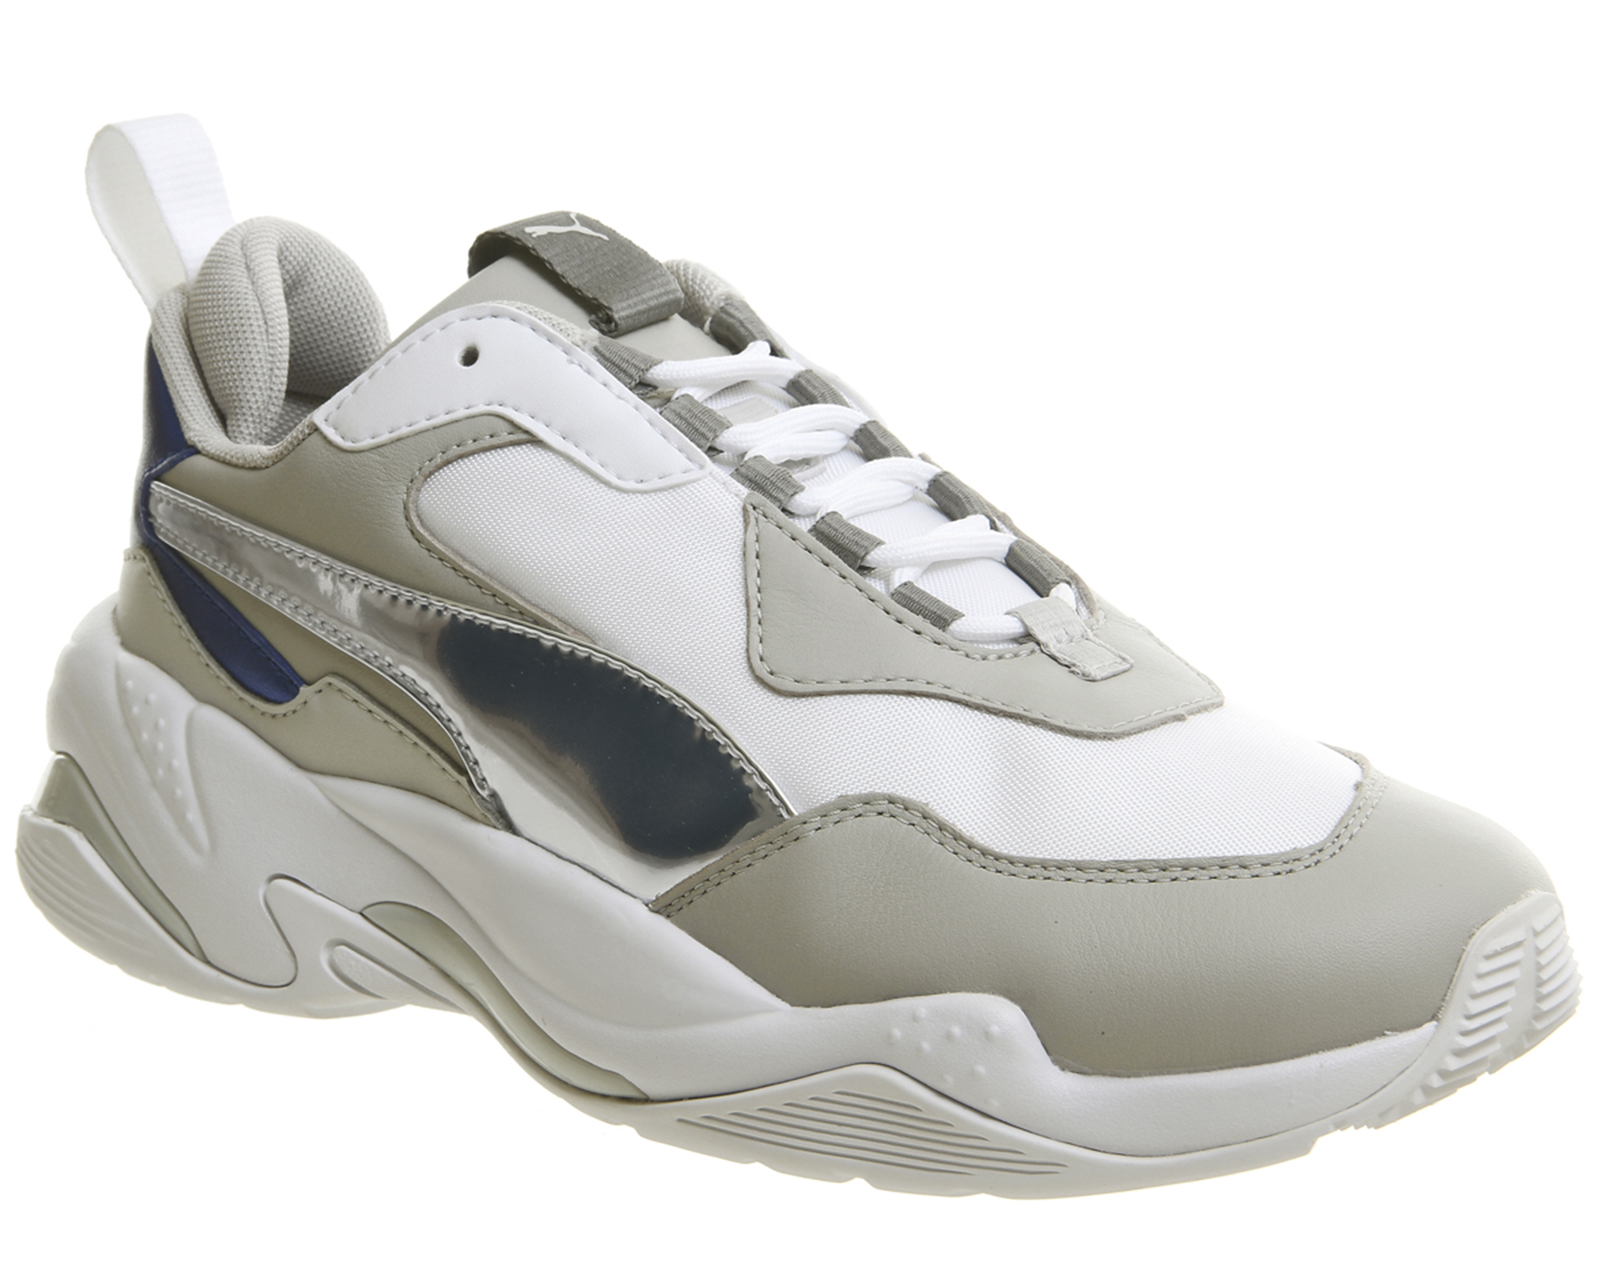 9344f3cdedd2 Sentinel Womens Puma Thunder Electric Trainers Puma White Grey Violet Puma  Trainers Shoes